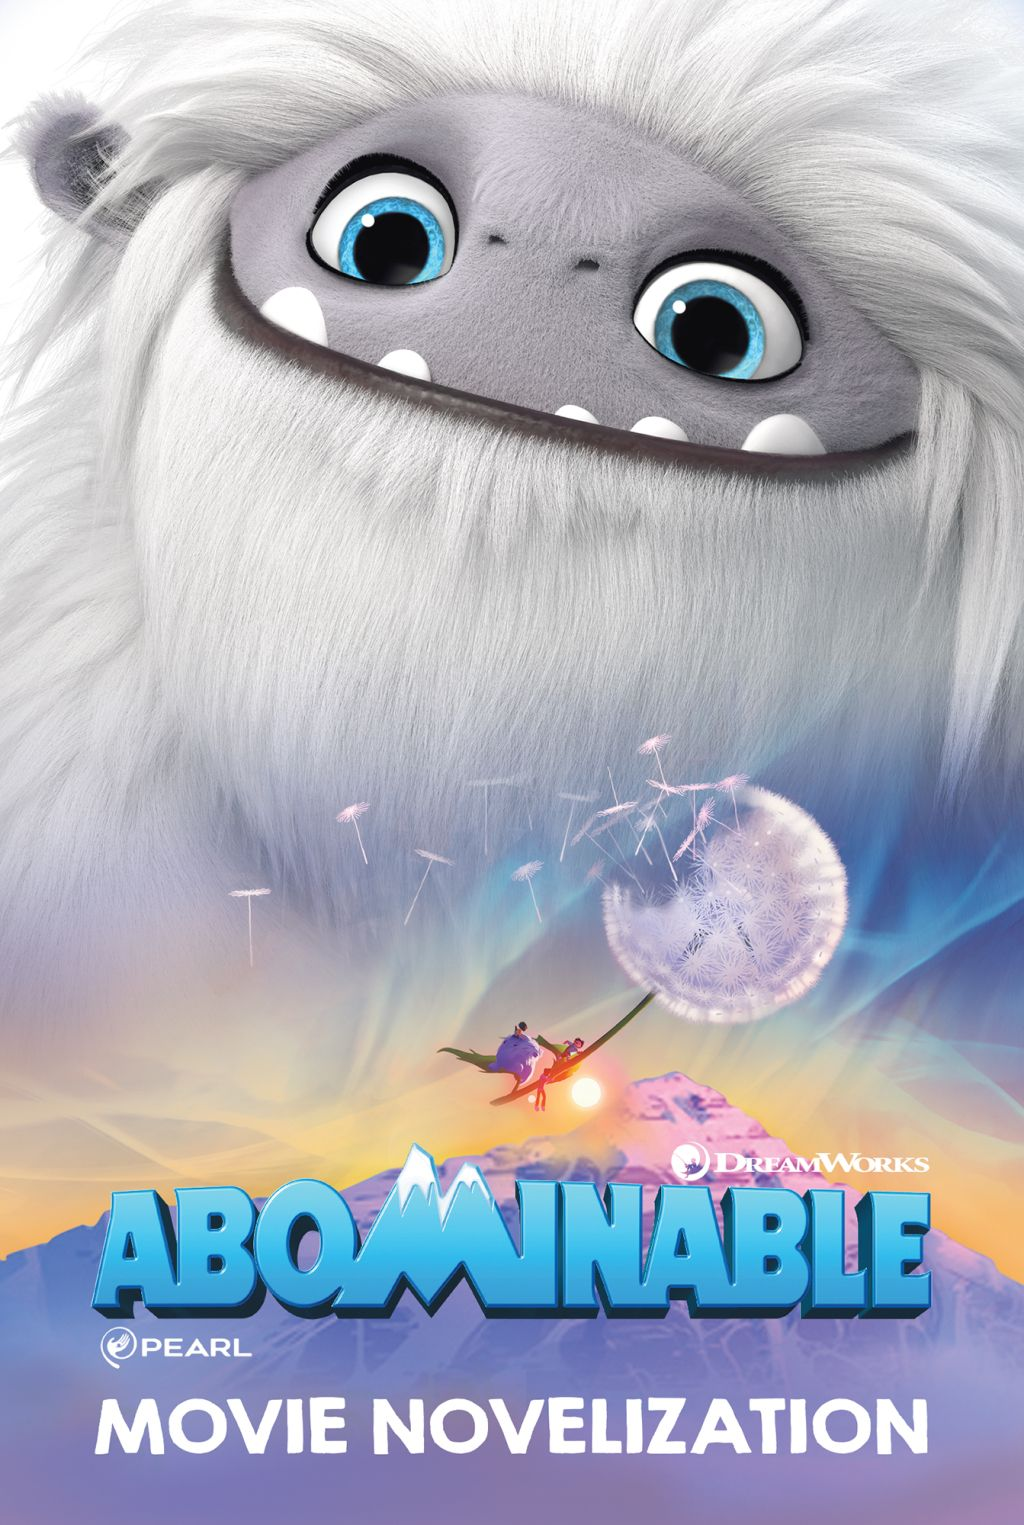 Abominable Movie Novelization Ebook In 2021 New Animation Movies Animated Movies Dreamworks